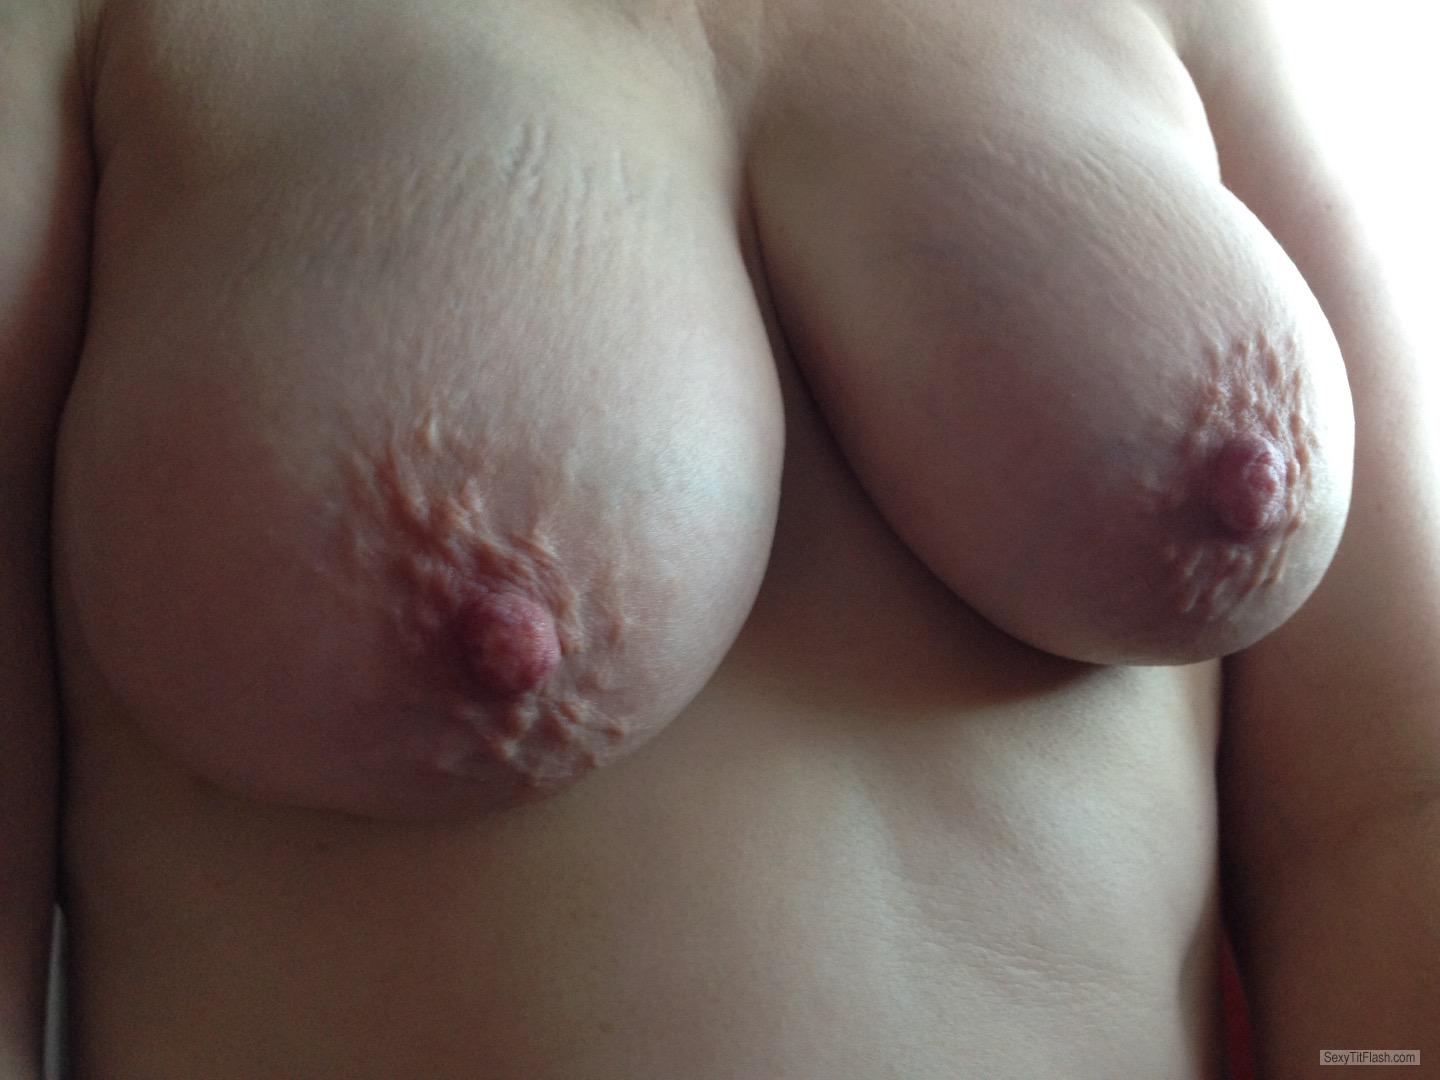 Medium Tits Of My Wife Coldnips